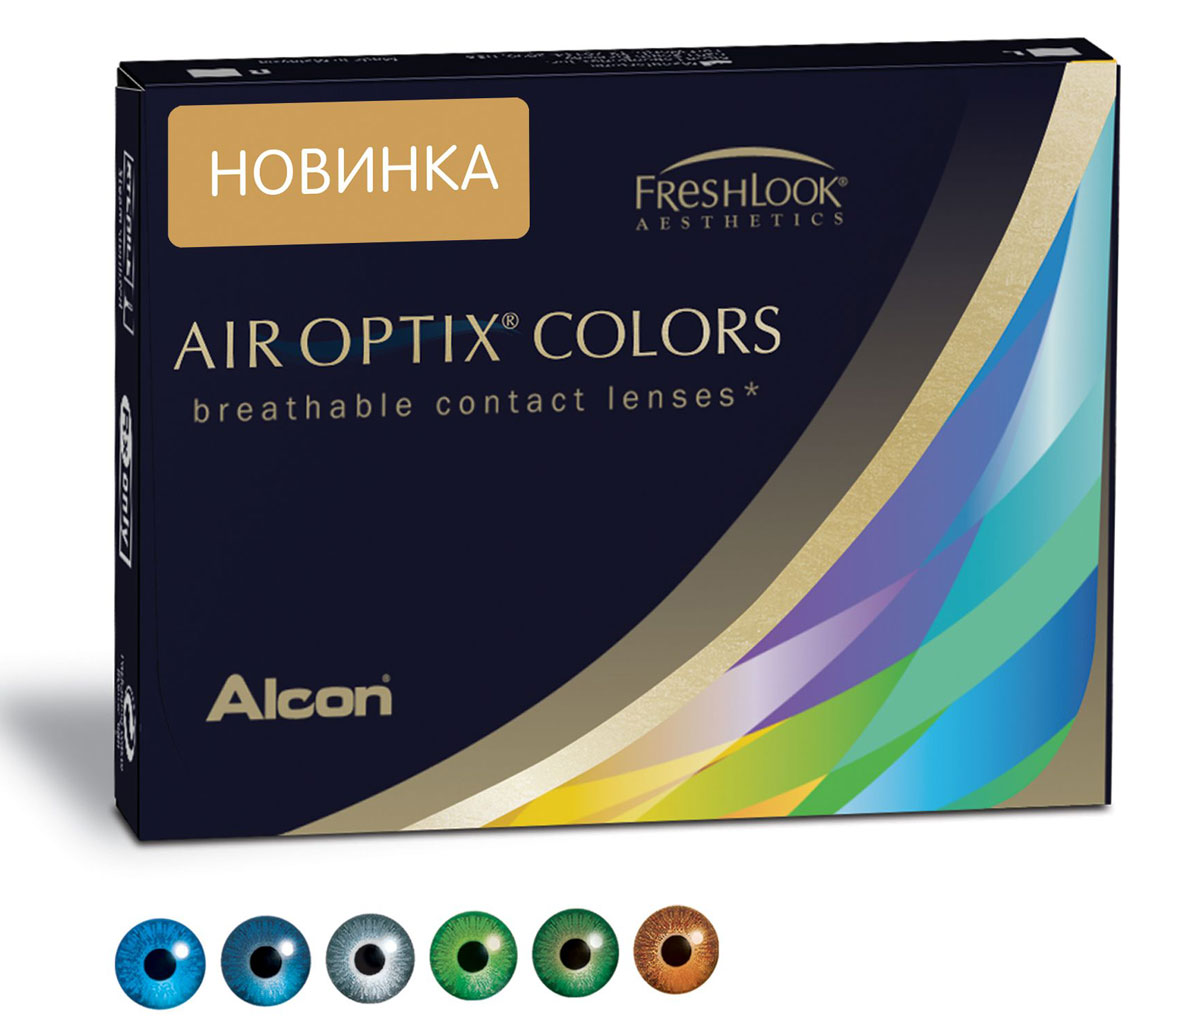 Аlcon контактные линзы Air Optix Colors 2 шт -1.25 Green